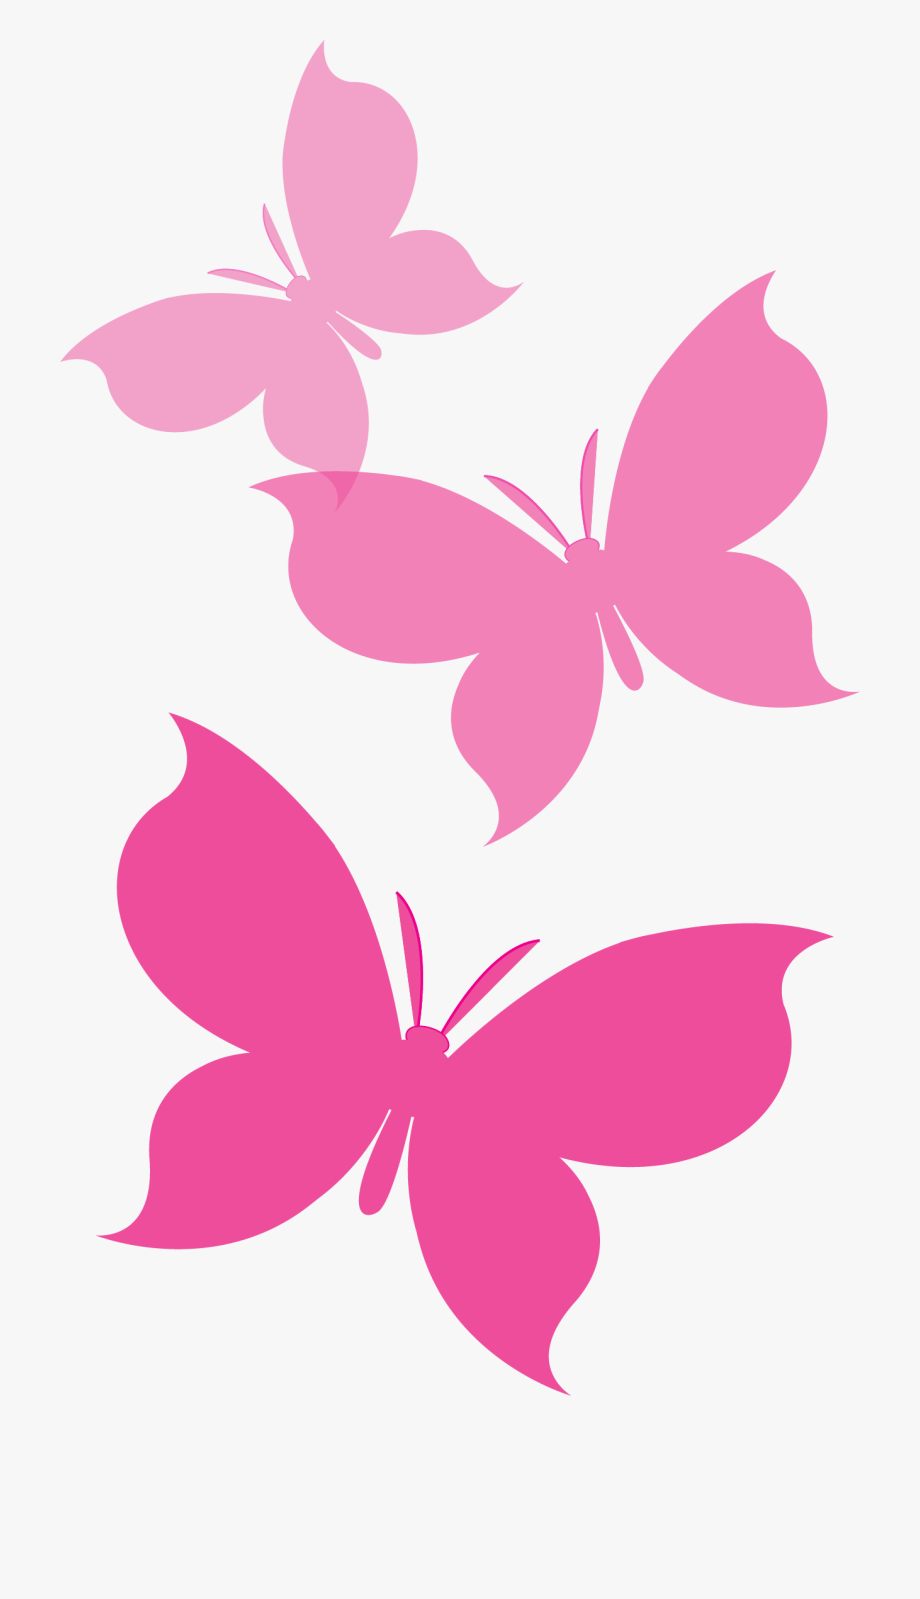 Your Journey, Our Promise Group Of Pink Butterflies.